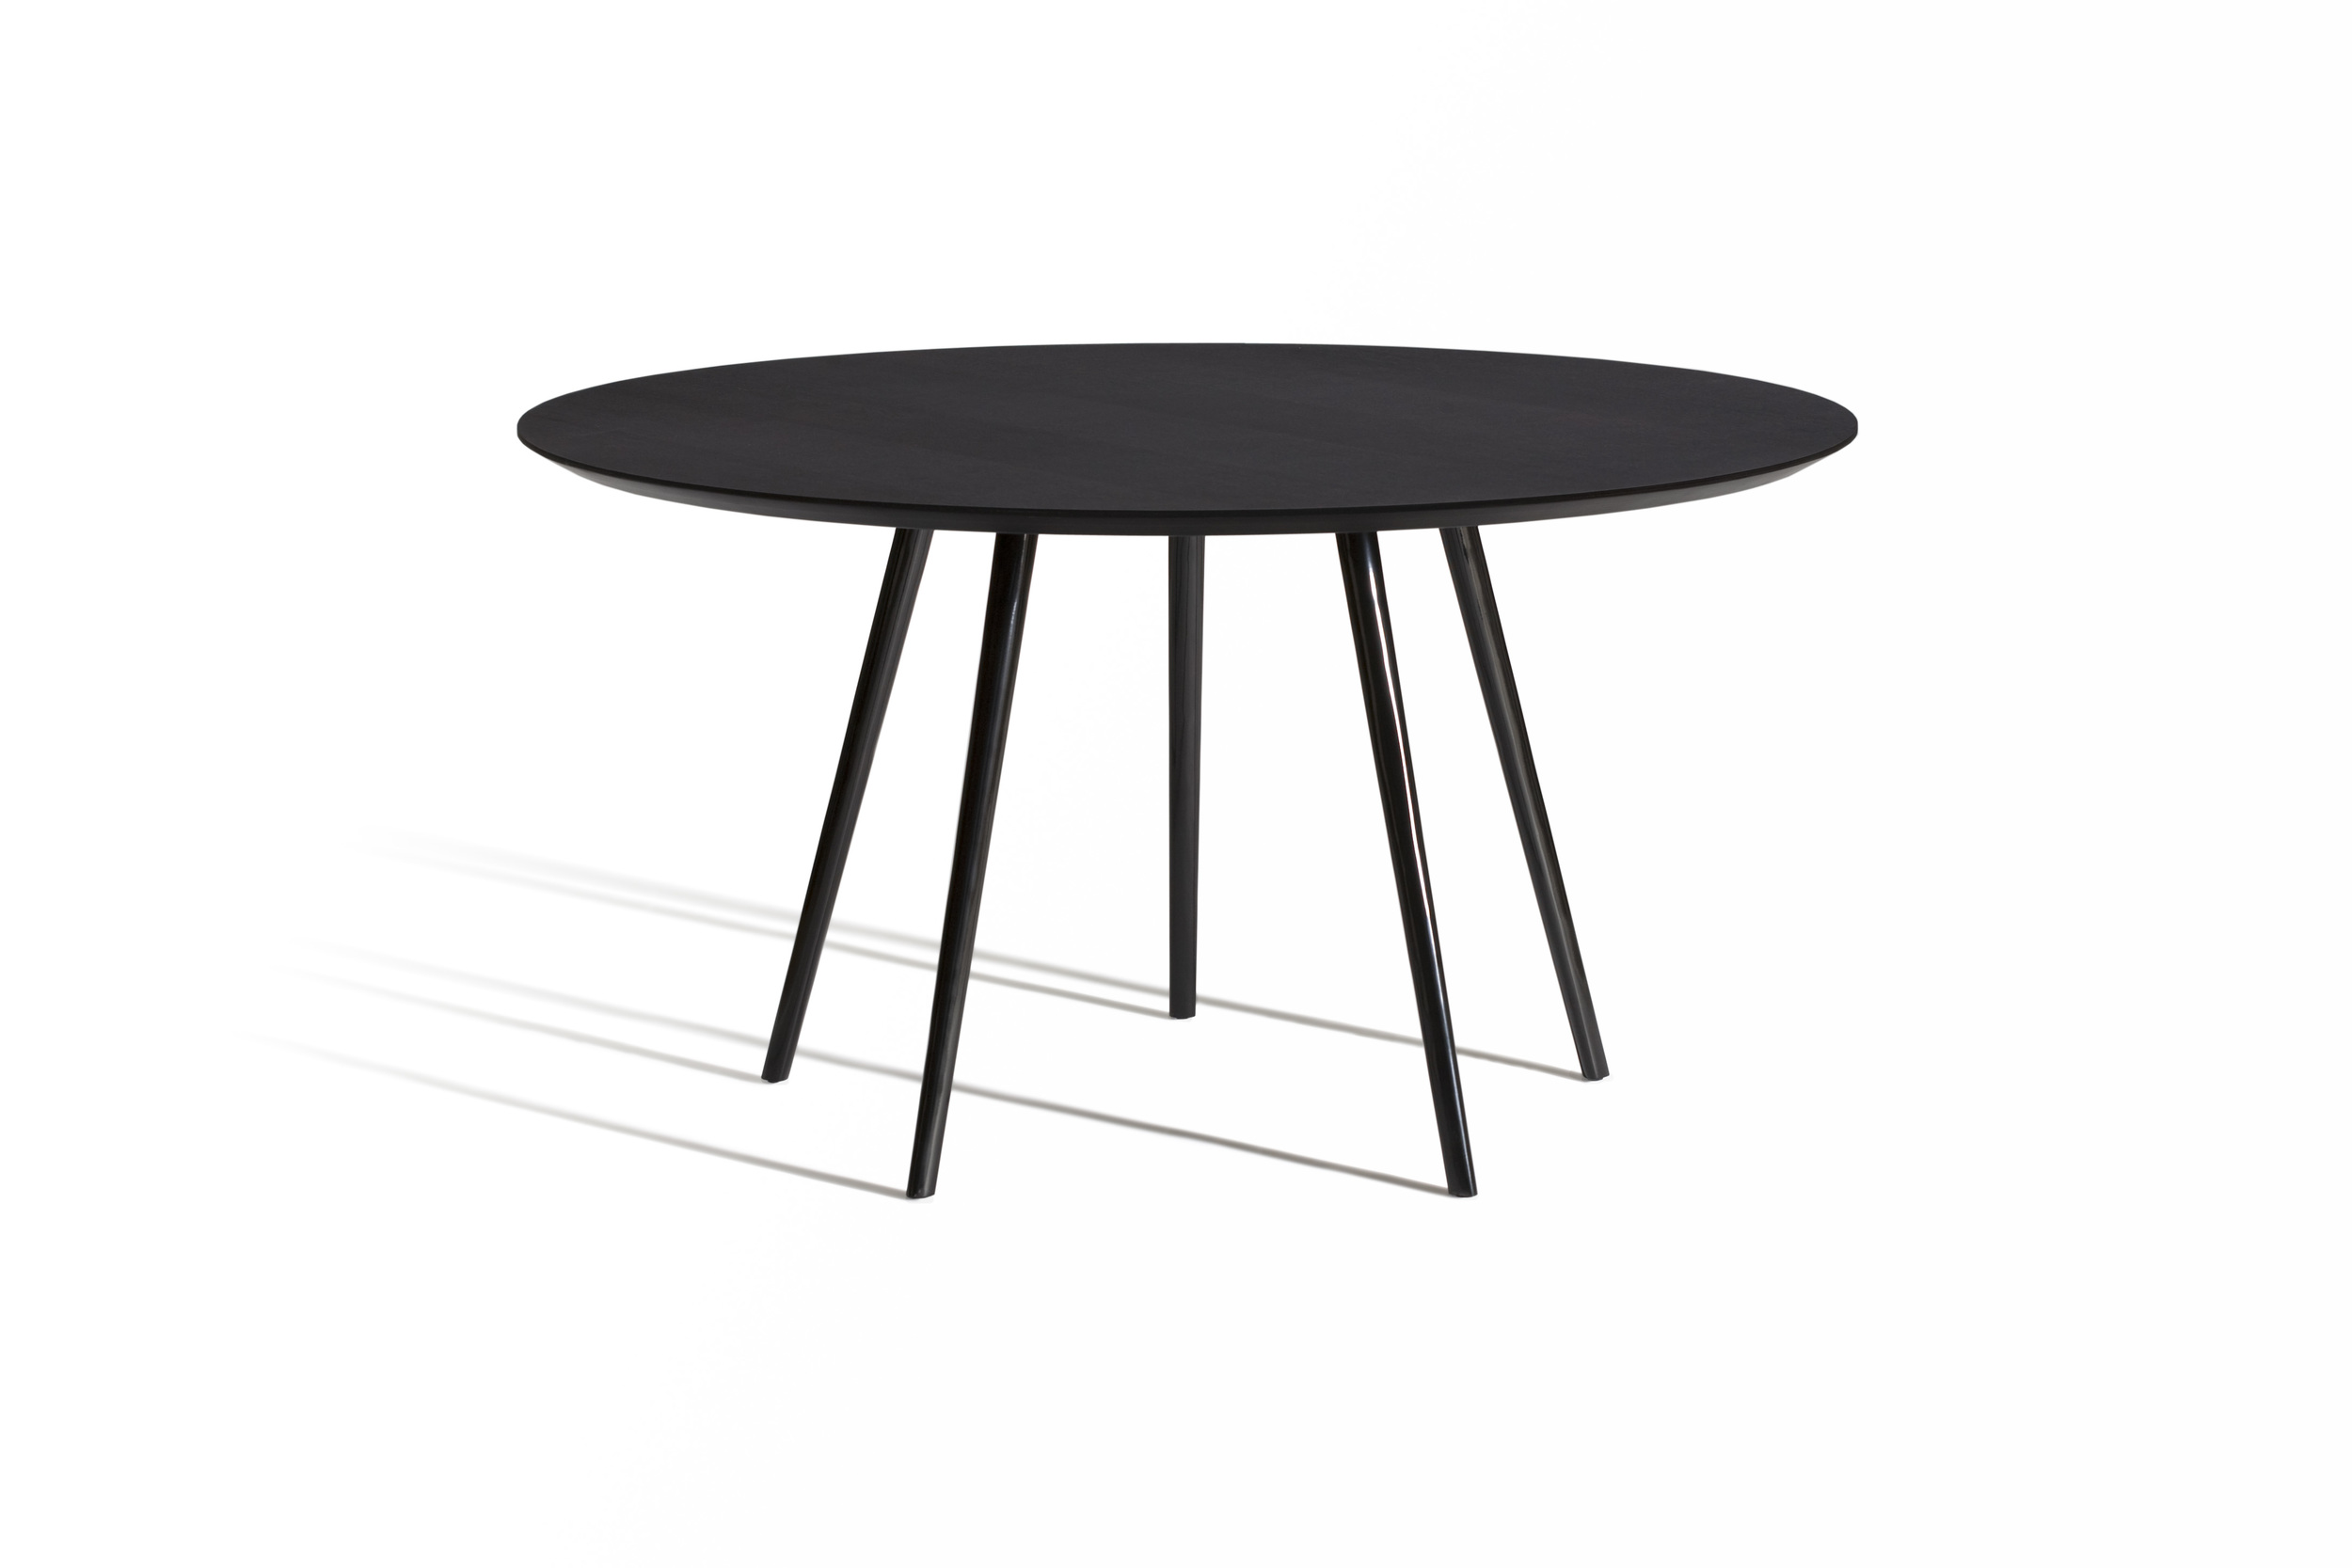 Capdell's Gazelle Table